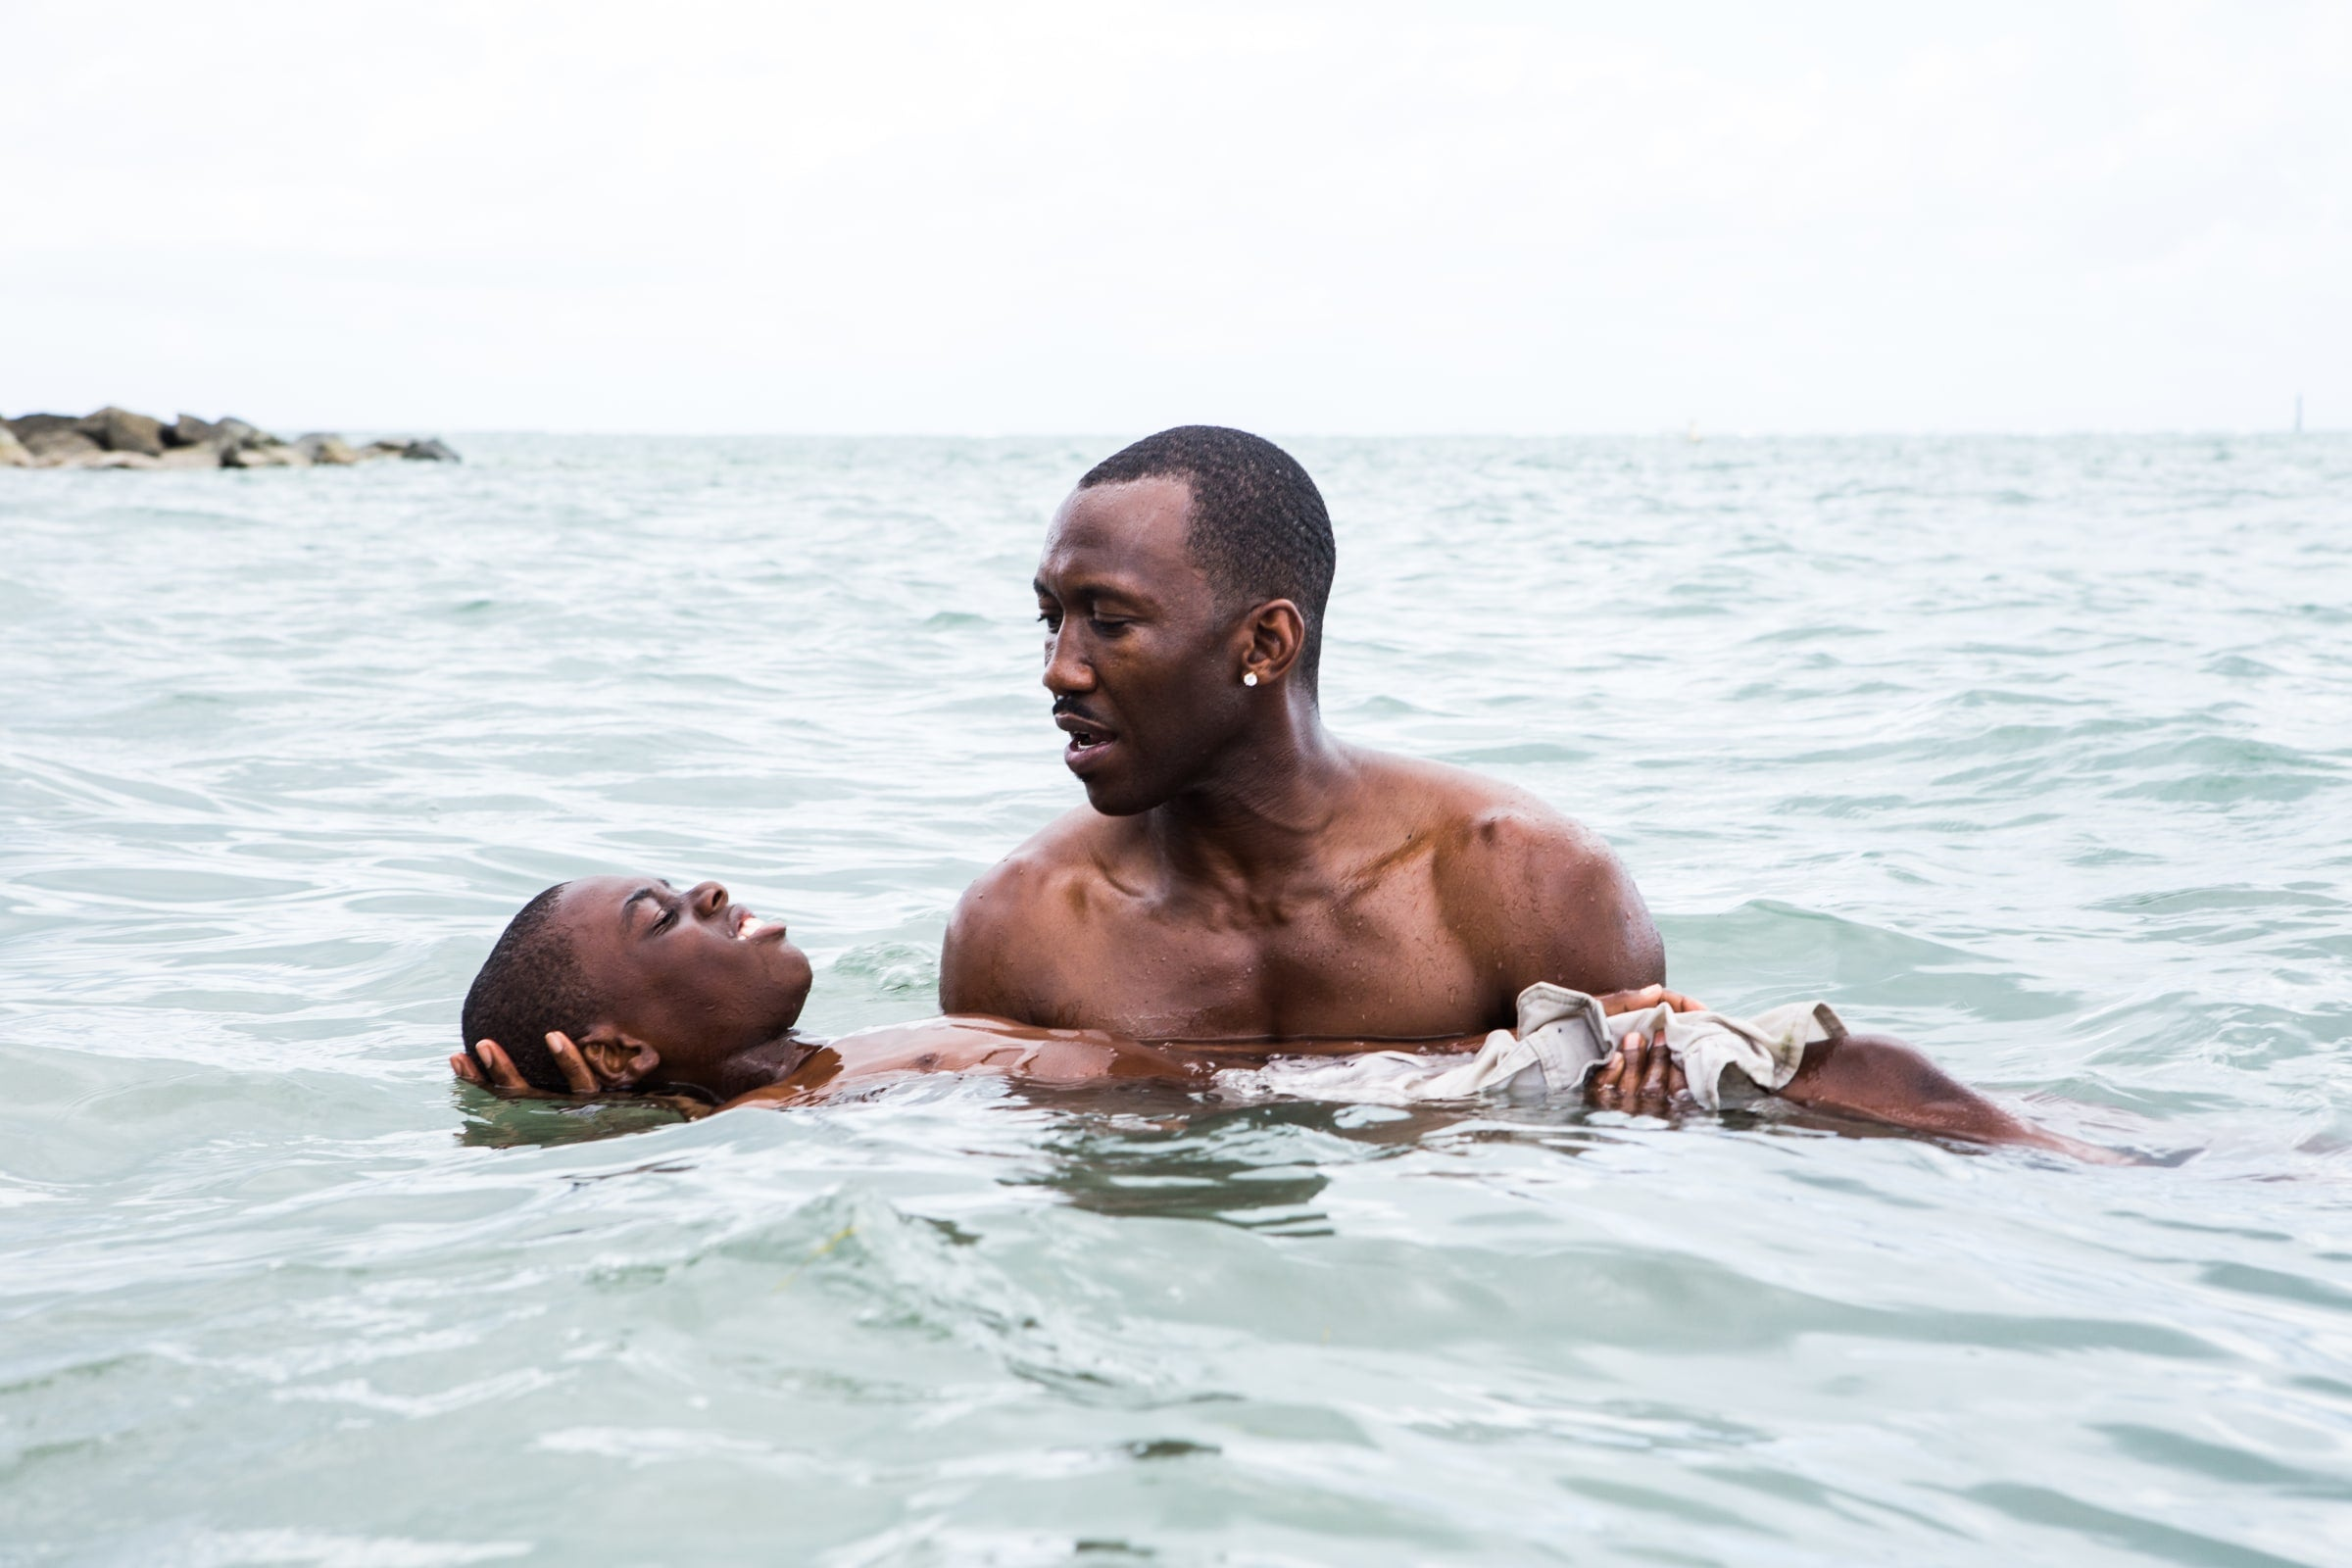 A Necessary Story: How 'Moonlight' Allows Black Manhood To Exist Beyond Toxic Masculinity